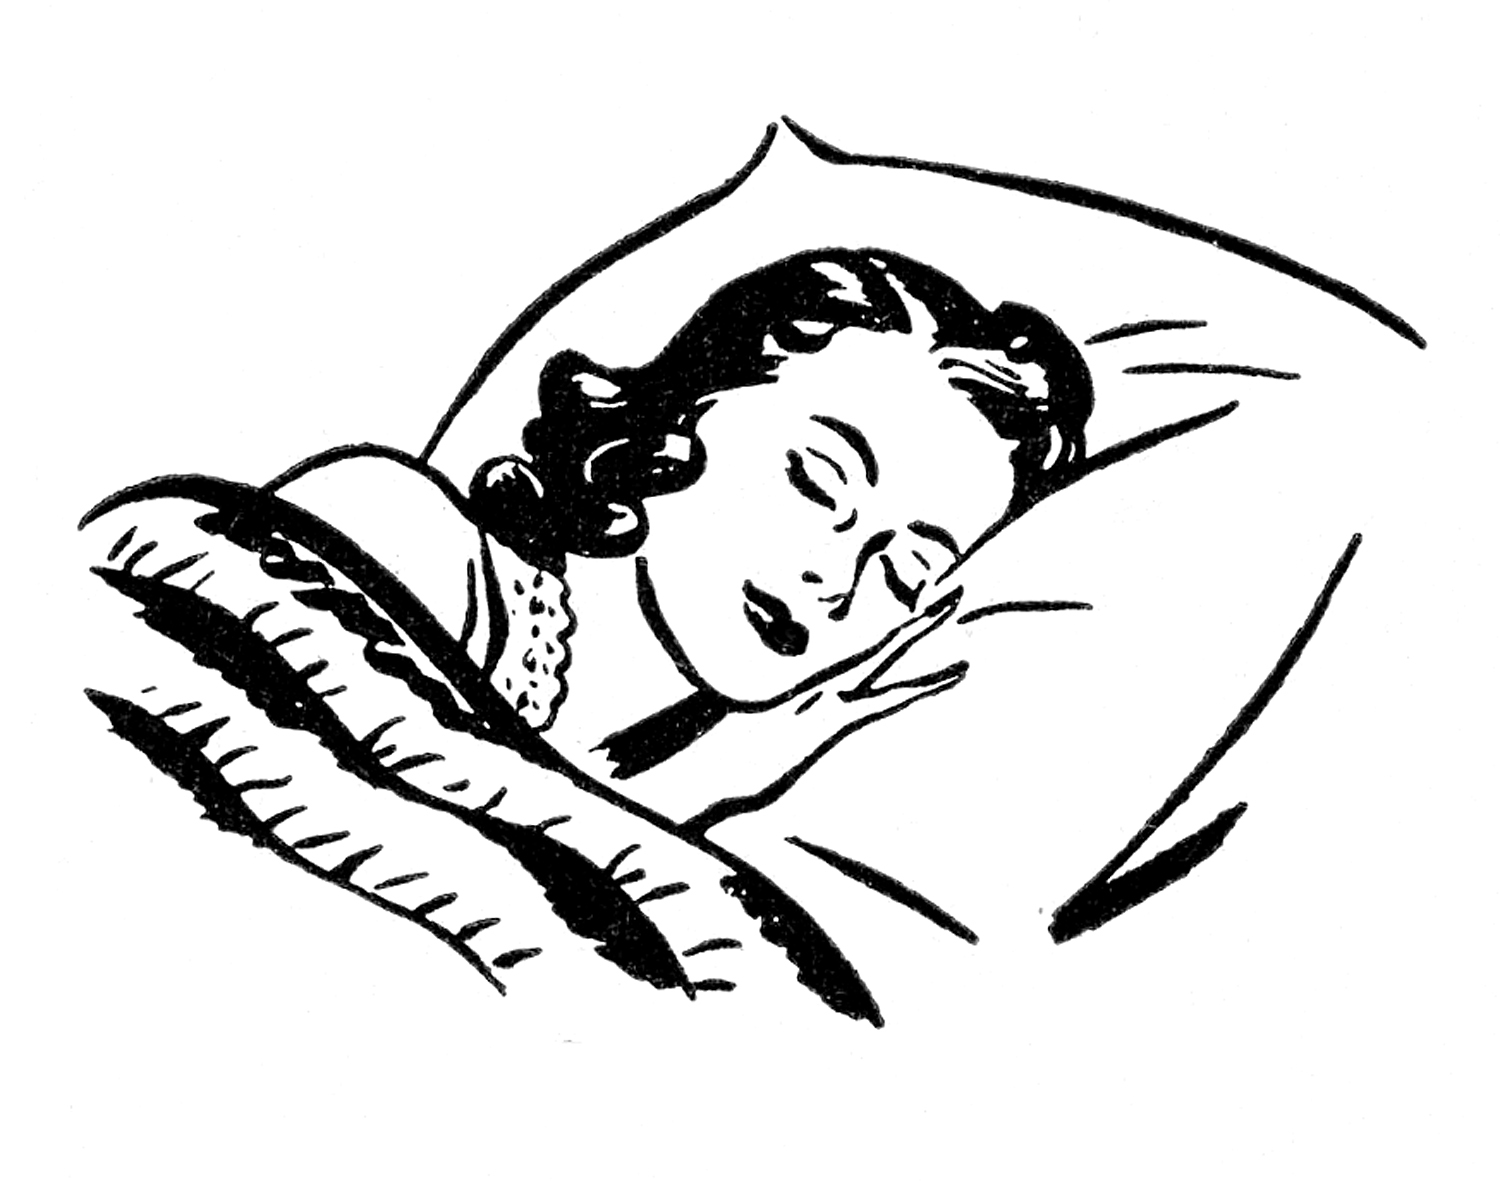 Sleep black and white clipart vector black and white download Retro Images - Sleeping - The Graphics Fairy vector black and white download